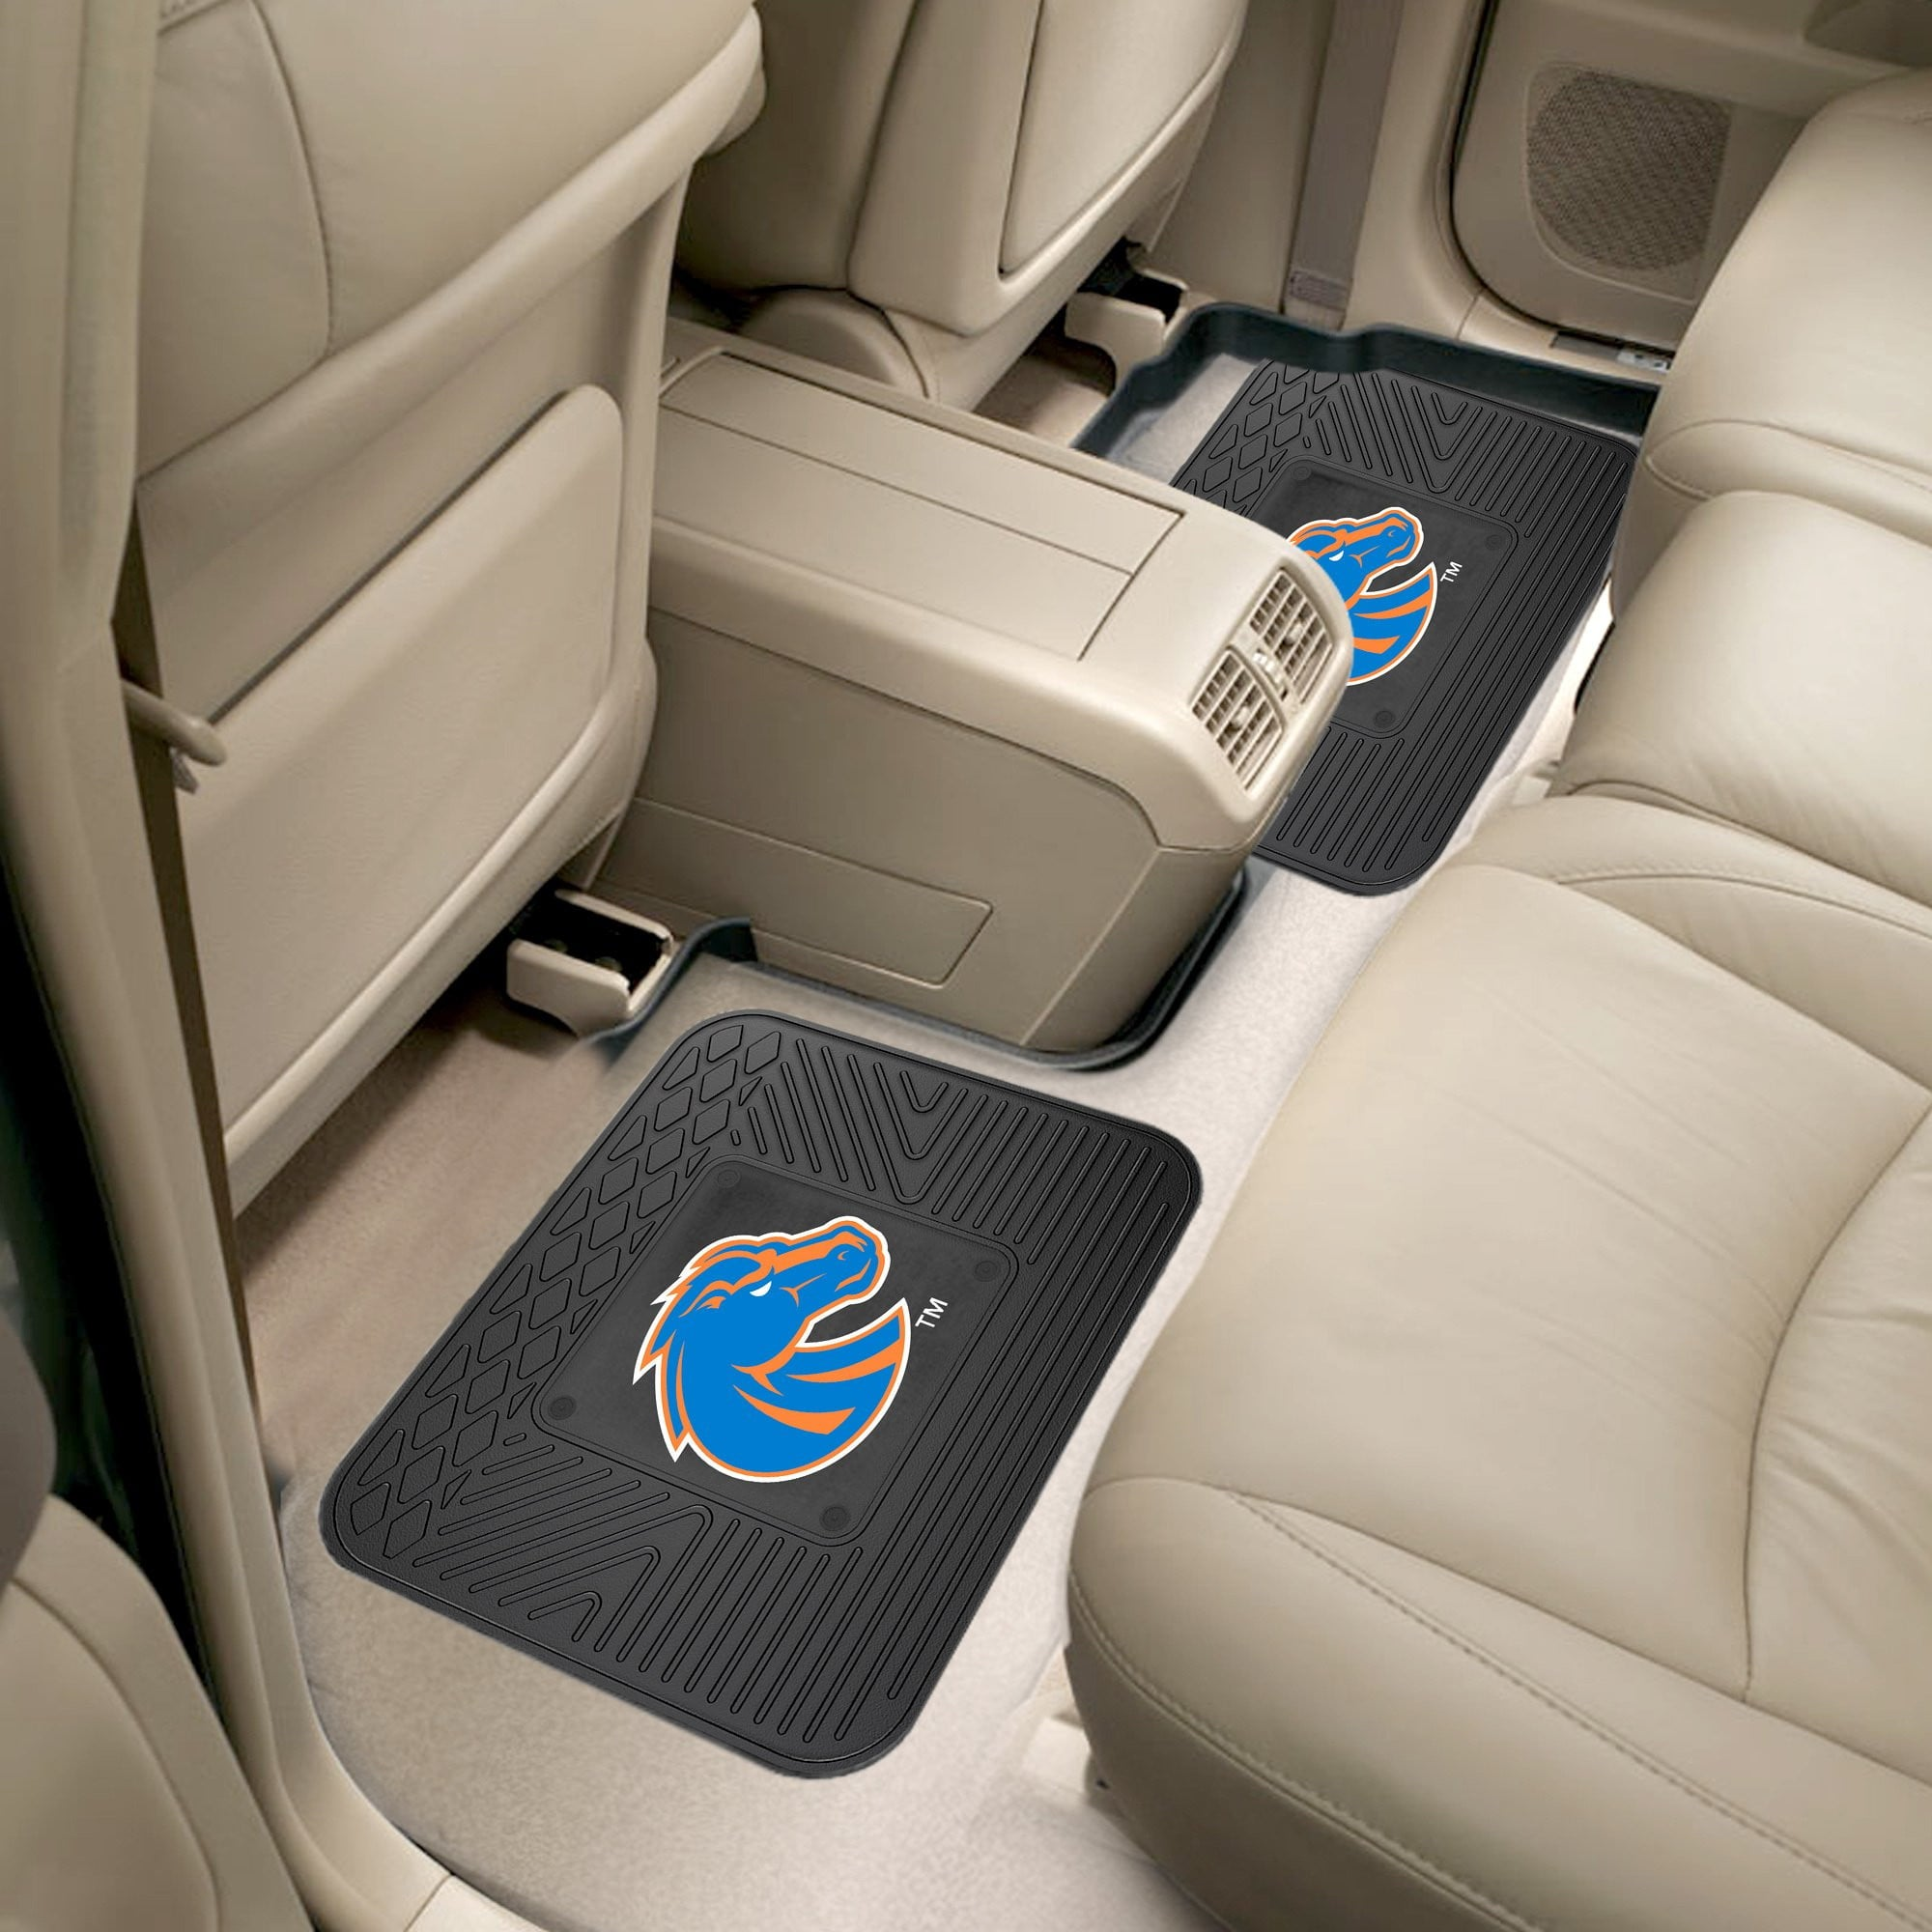 Boise State Broncos 2 Utility Car Mats